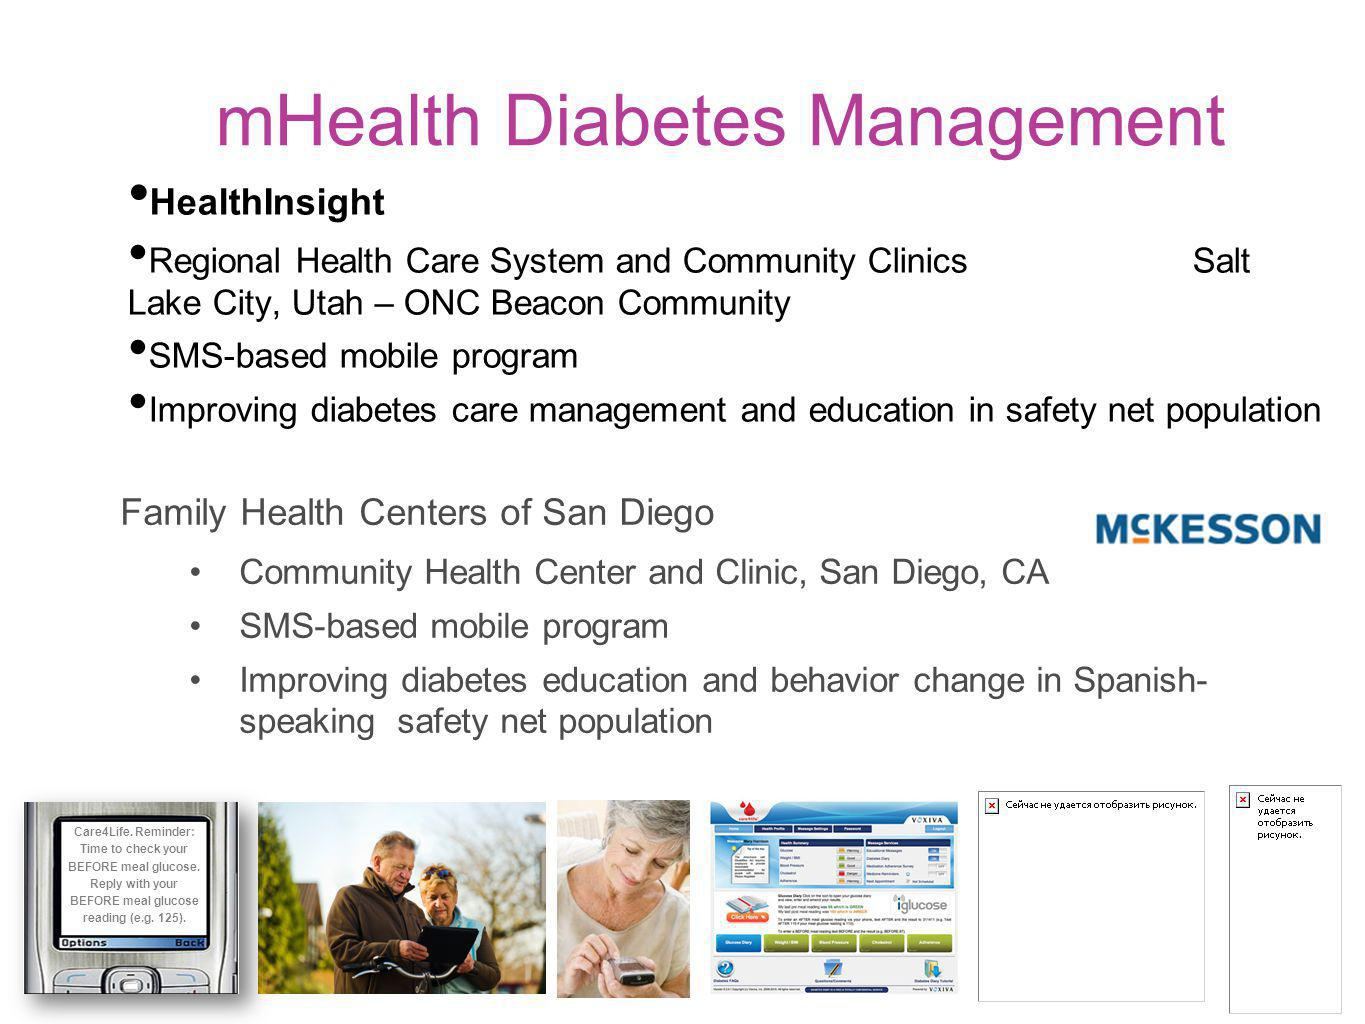 mHealth Diabetes Management HealthInsight Regional Health Care System and Community Clinics Salt Lake City, Utah – ONC Beacon Community SMS-based mobile program Improving diabetes care management and education in safety net population Care4Life.